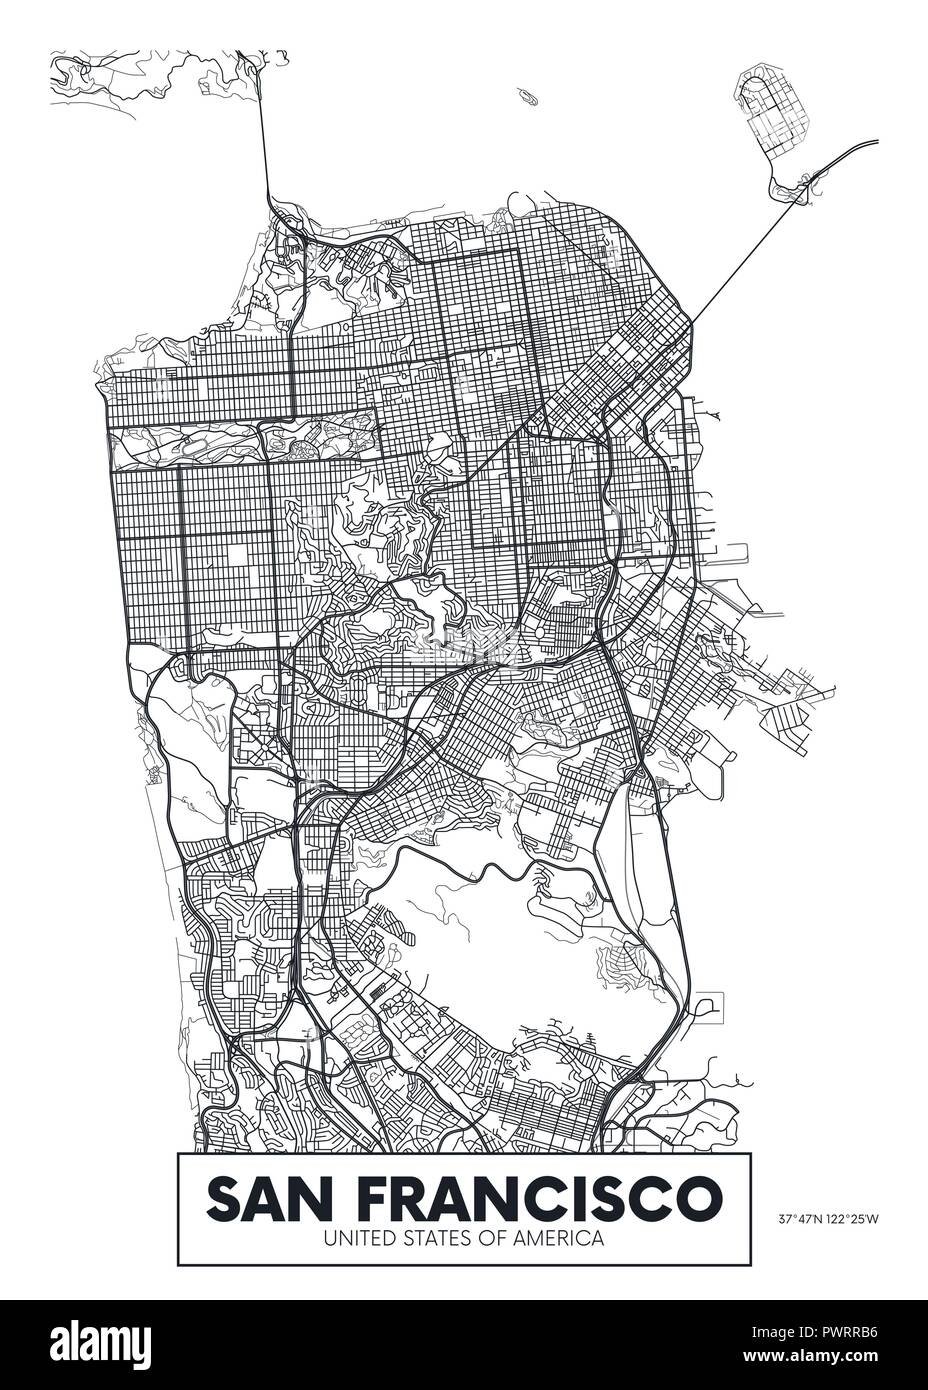 Vector poster map city San Francisco detailed plan of the ... on napa city street map, snohomish city street map, inglewood city street map, porterville city street map, irvine city street map, jackson city street map, new haven city street map, ithaca city street map, johannesburg city street map, springfield city street map, san pablo city street map, aurora city street map, tacoma city street map, austin city street map, wichita city street map, madison city street map, santa clara county street map, medford city street map, billings city street map, flagstaff city street map,